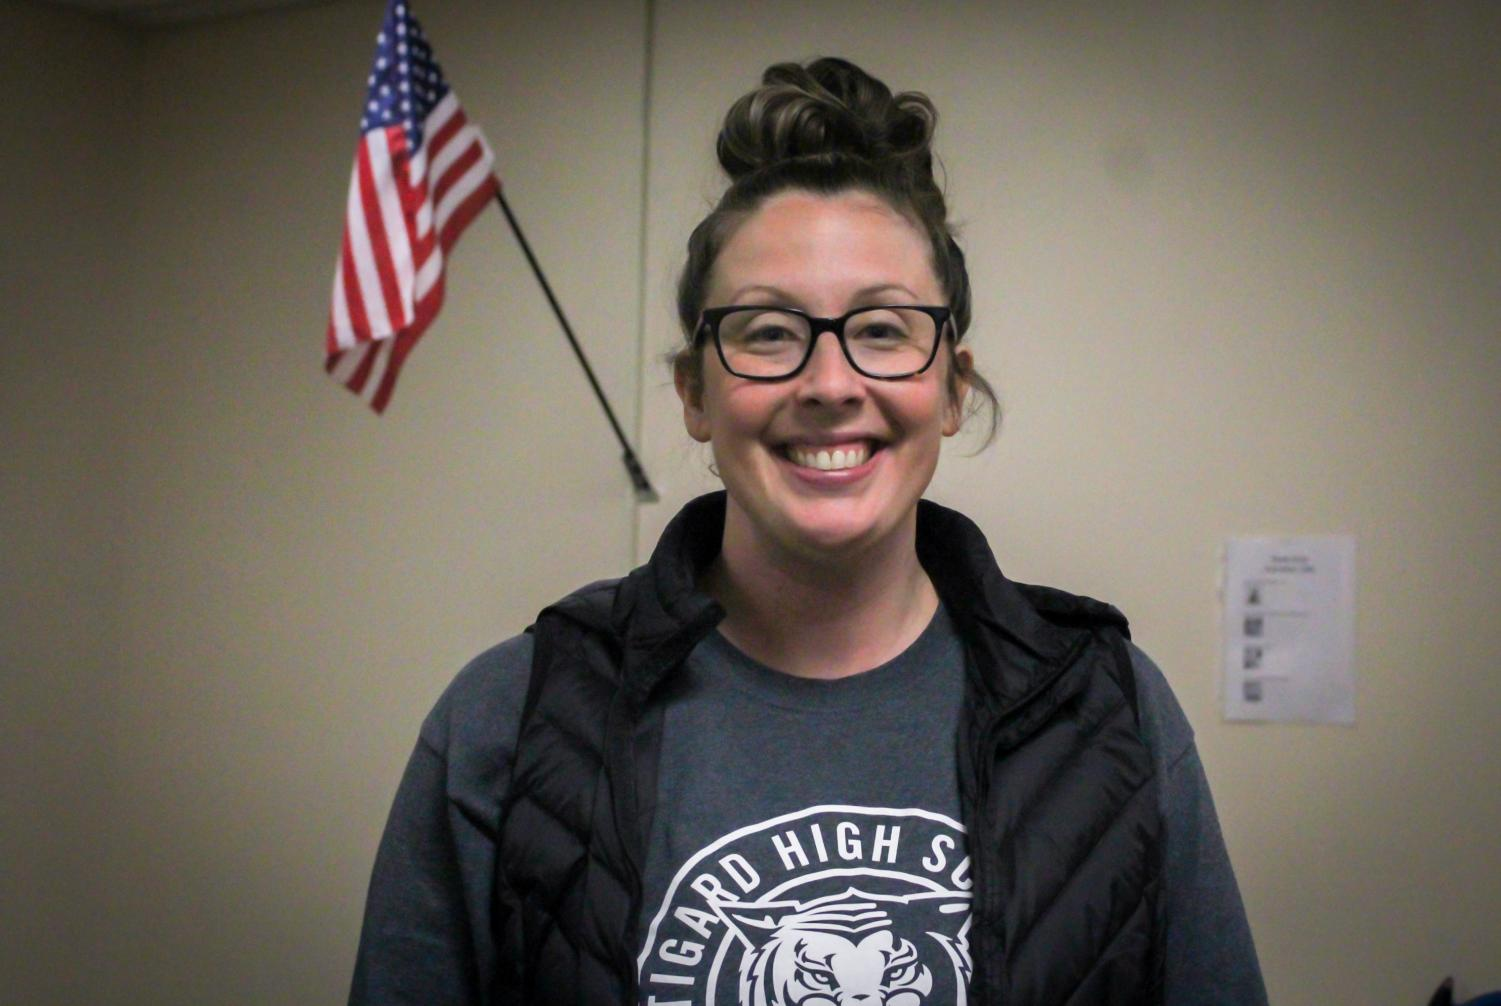 Kelley Brack is an LSA. She began working at Tigard seven years ago.